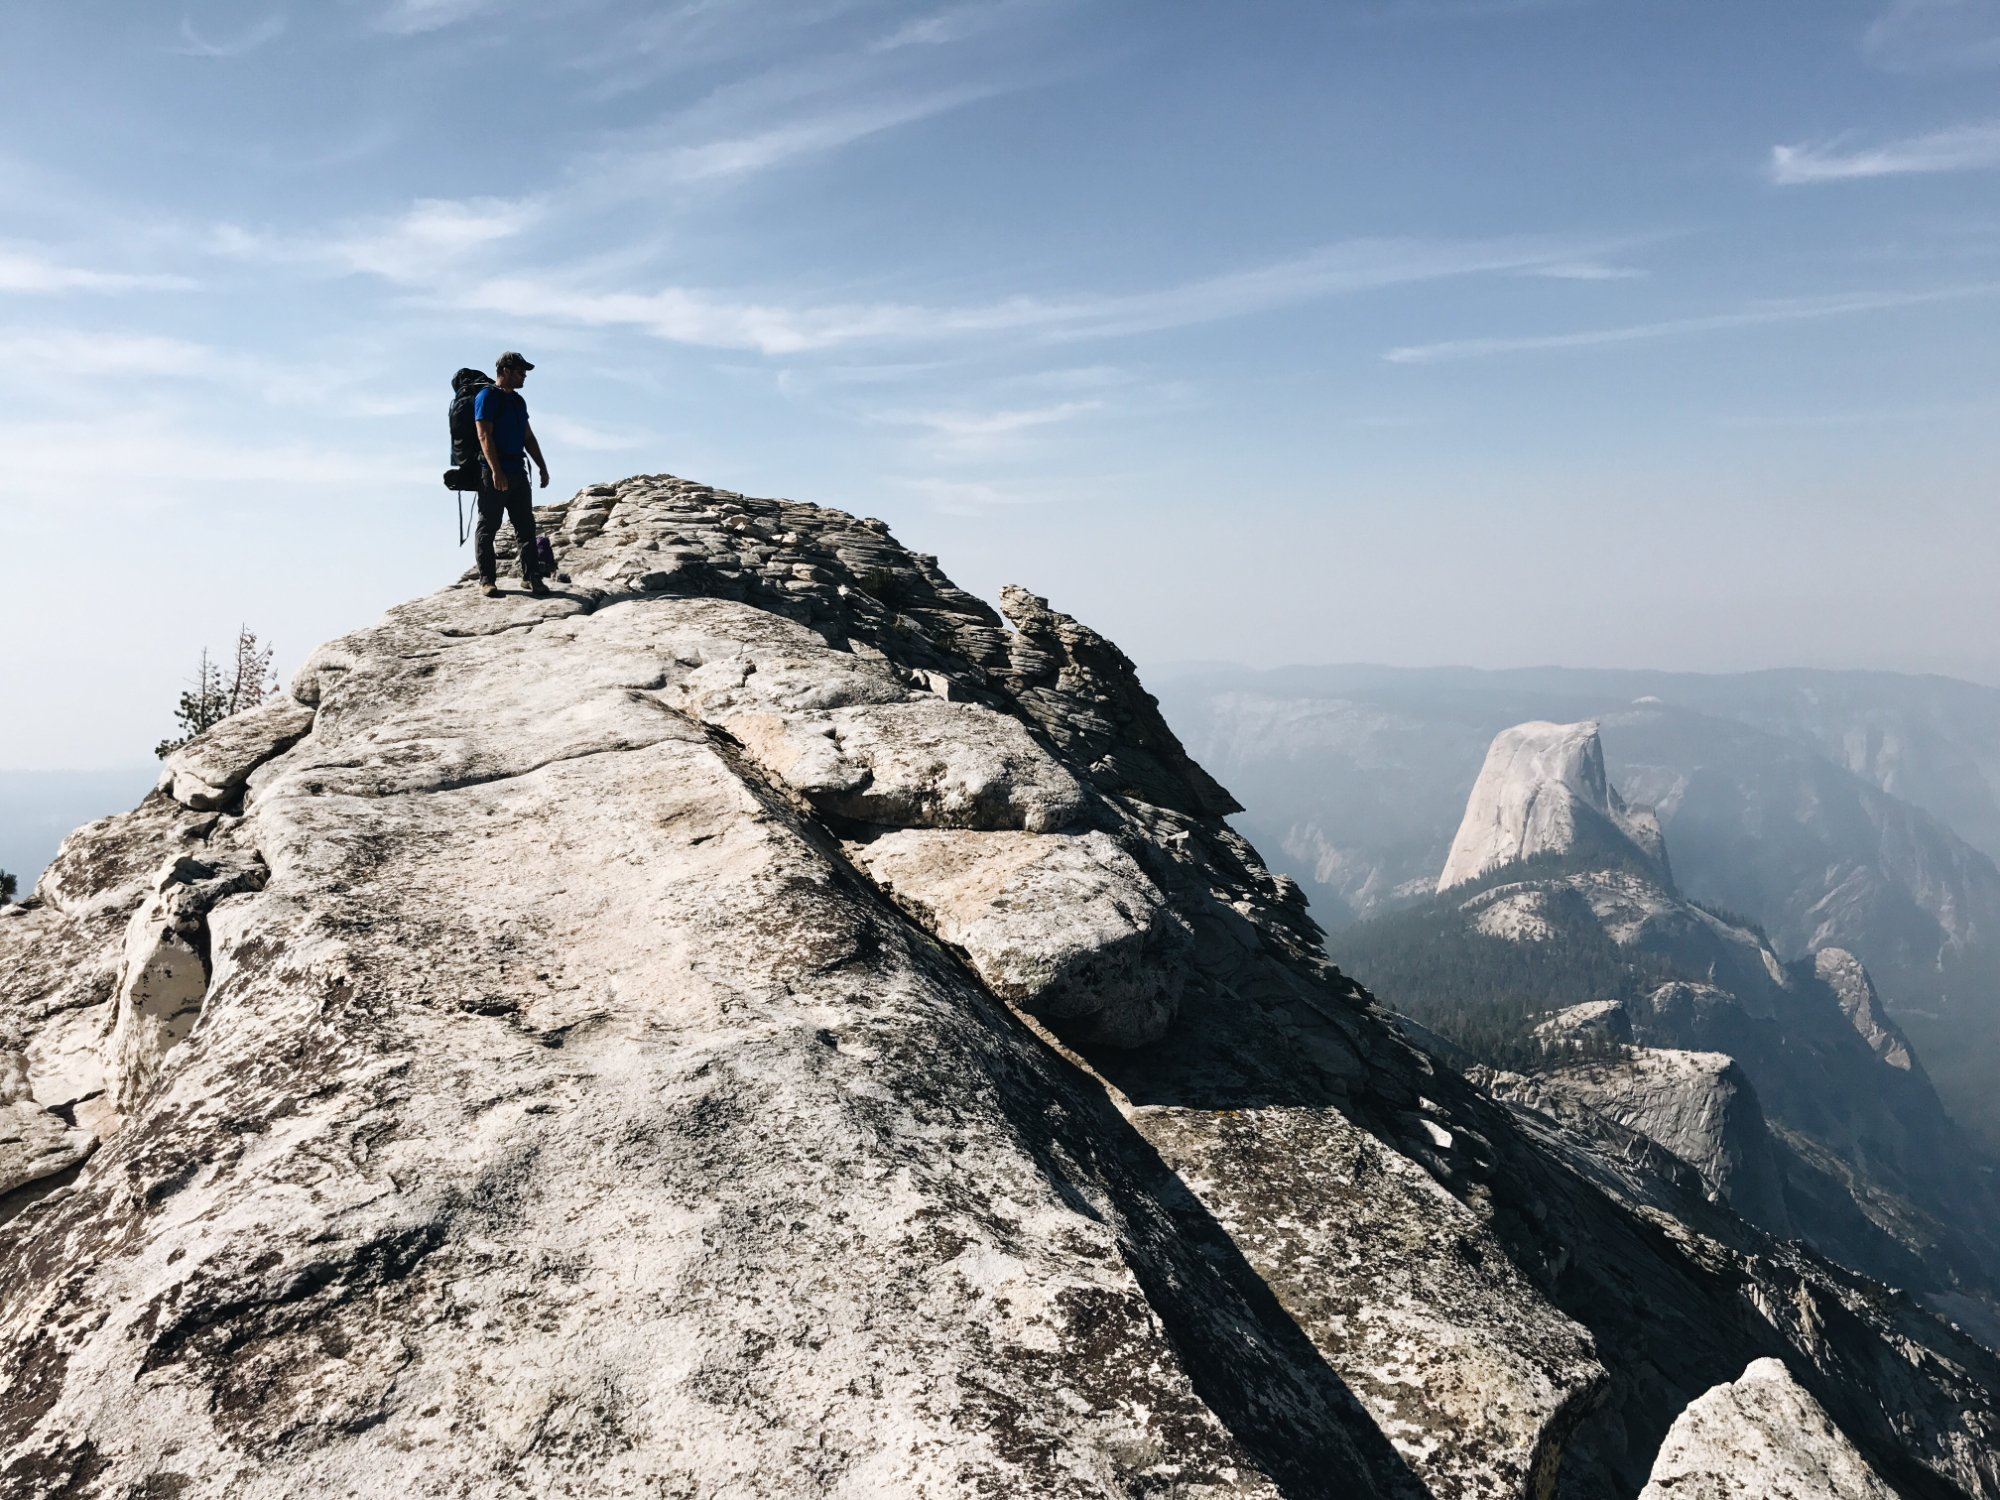 Standing on Cloud's Rest with a view of Half Dome.